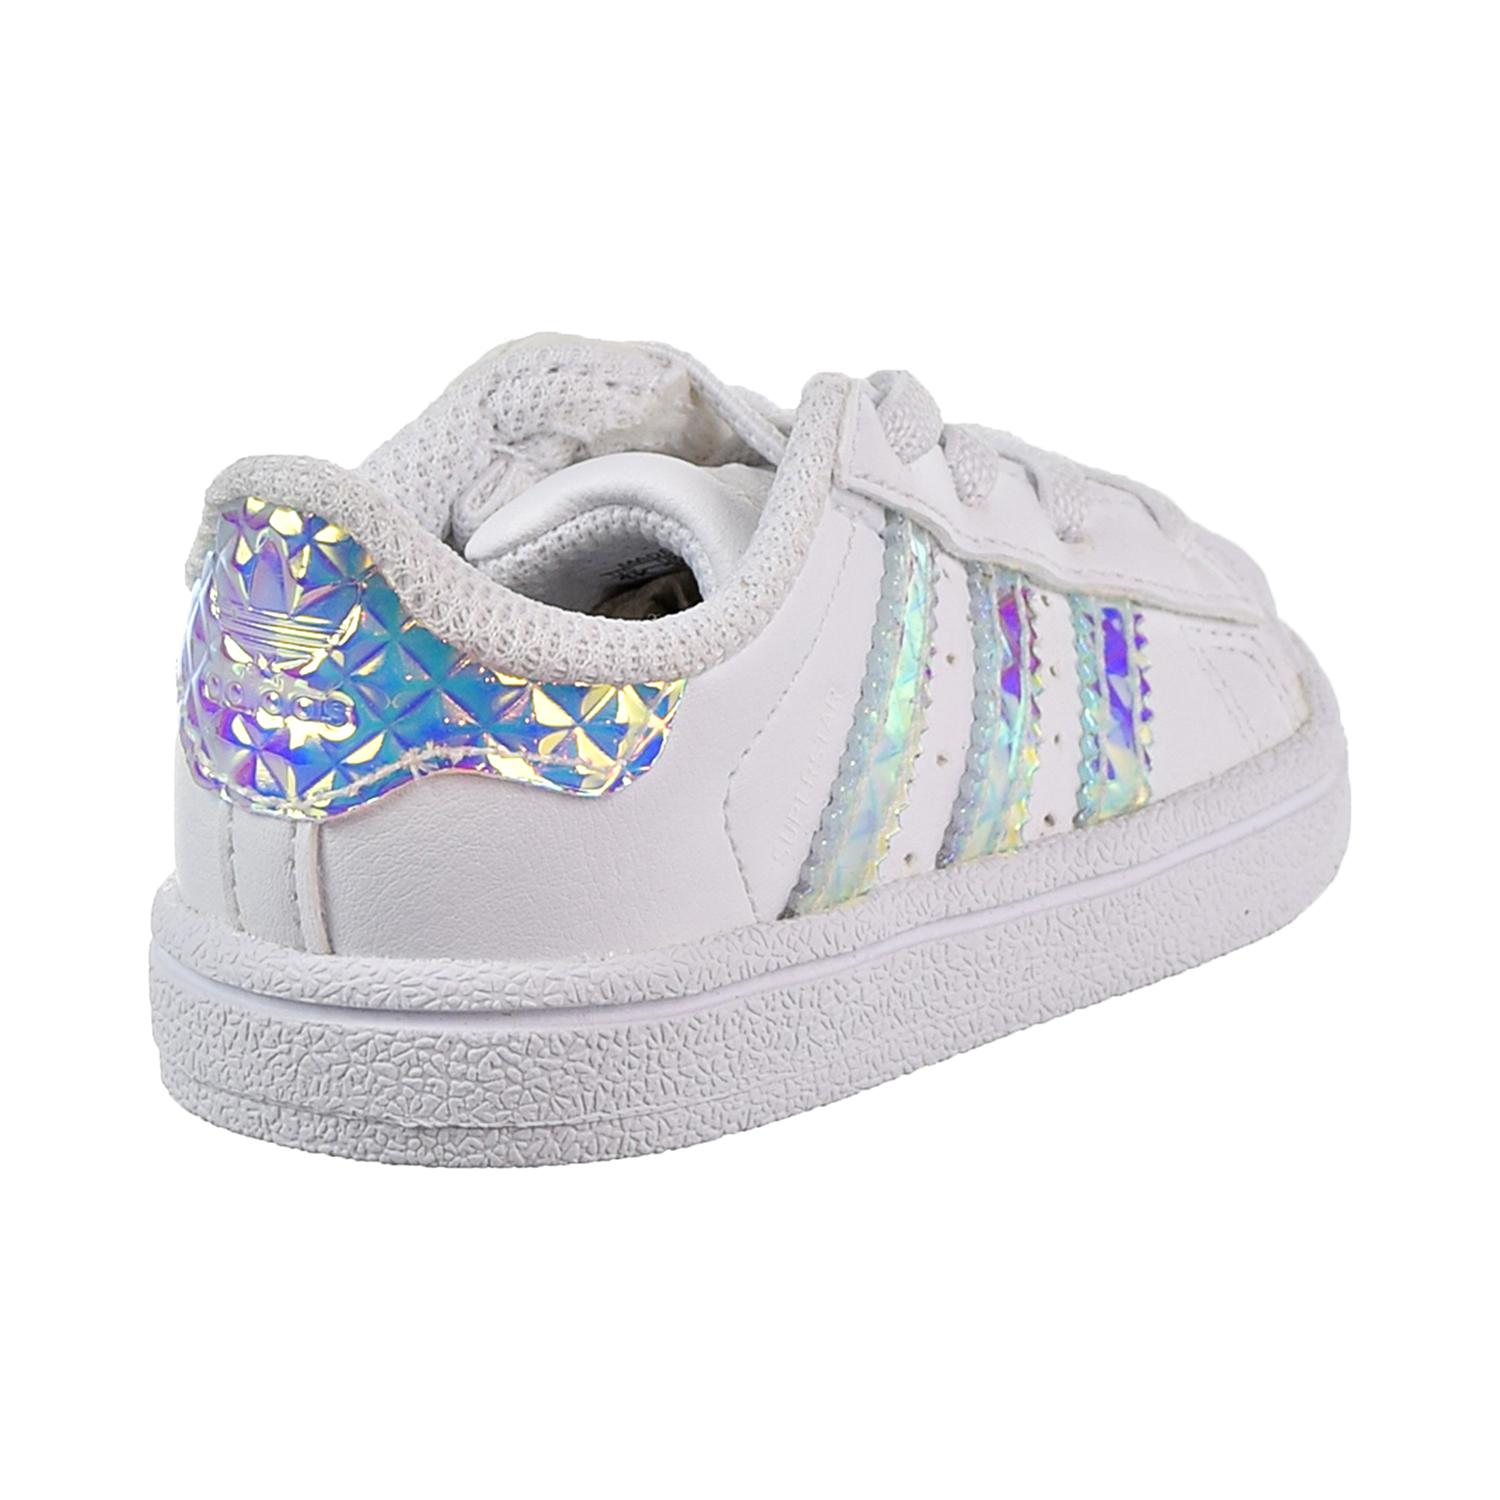 Adidas Superstar EL Toddler s Shoes Cloud White Cloud White Cloud White  cg3598 9a70020c5